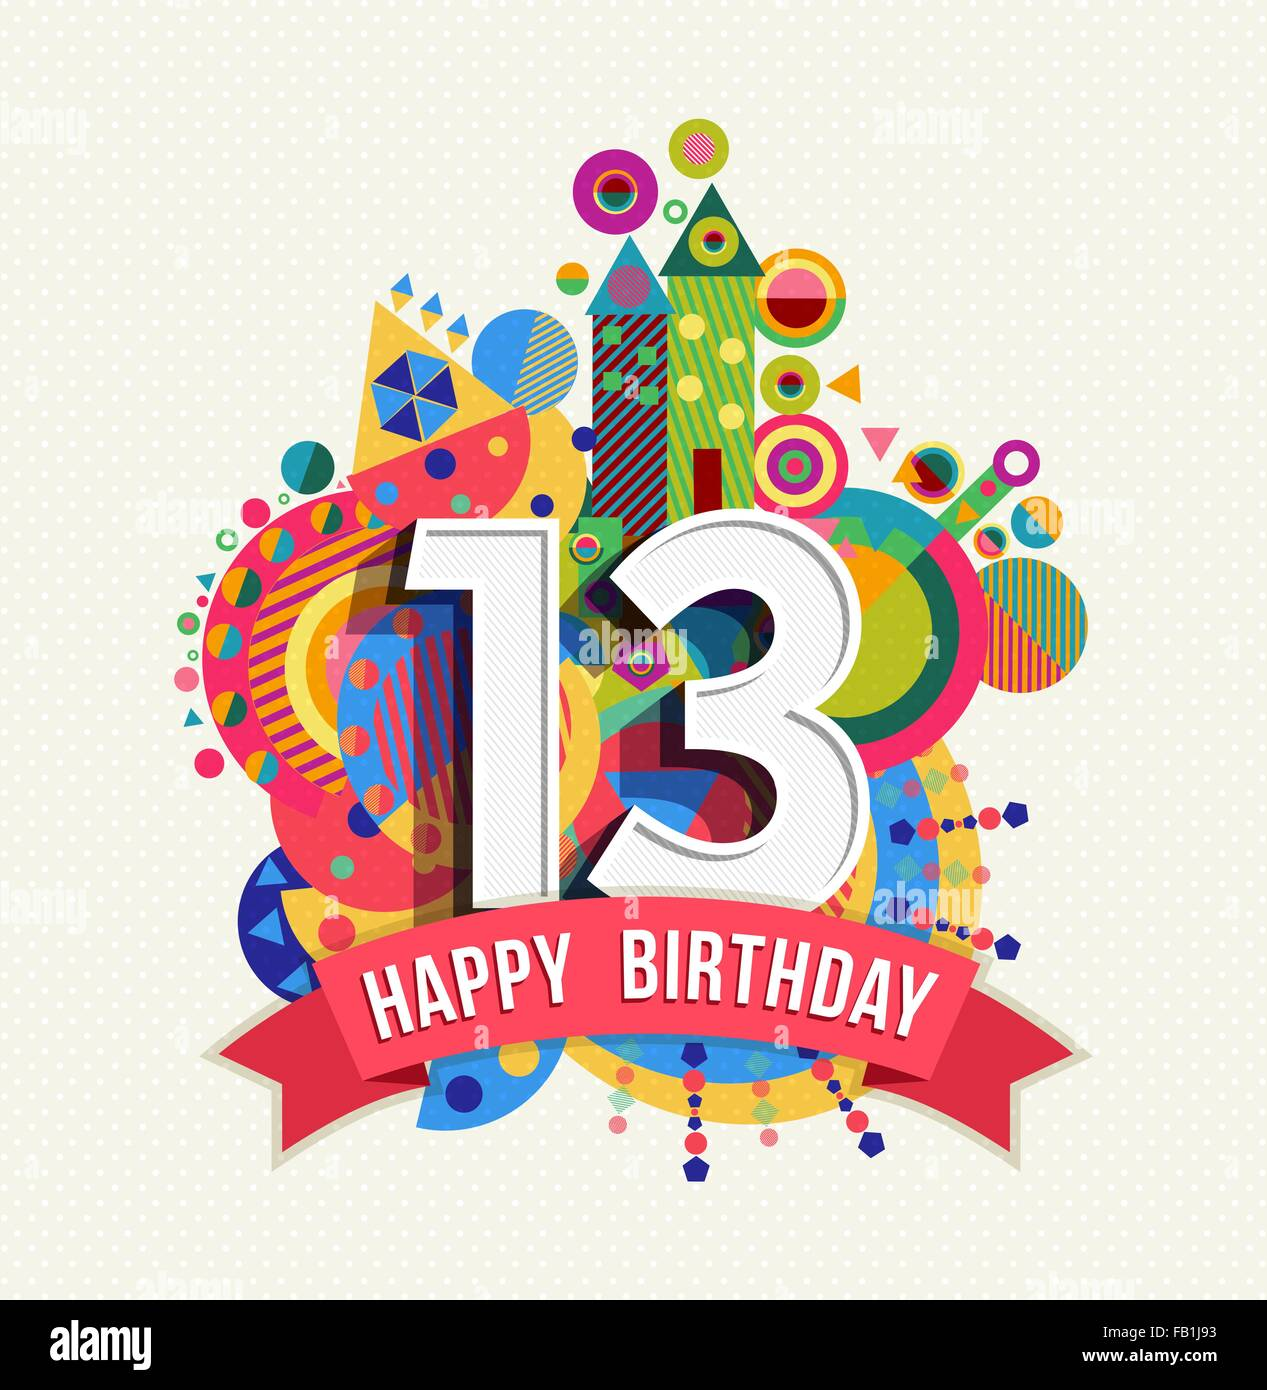 Happy Birthday Thirteen 13 Year Fun Celebration Greeting Card With Number Text Label And Colorful Geometry Design EPS10 Vector